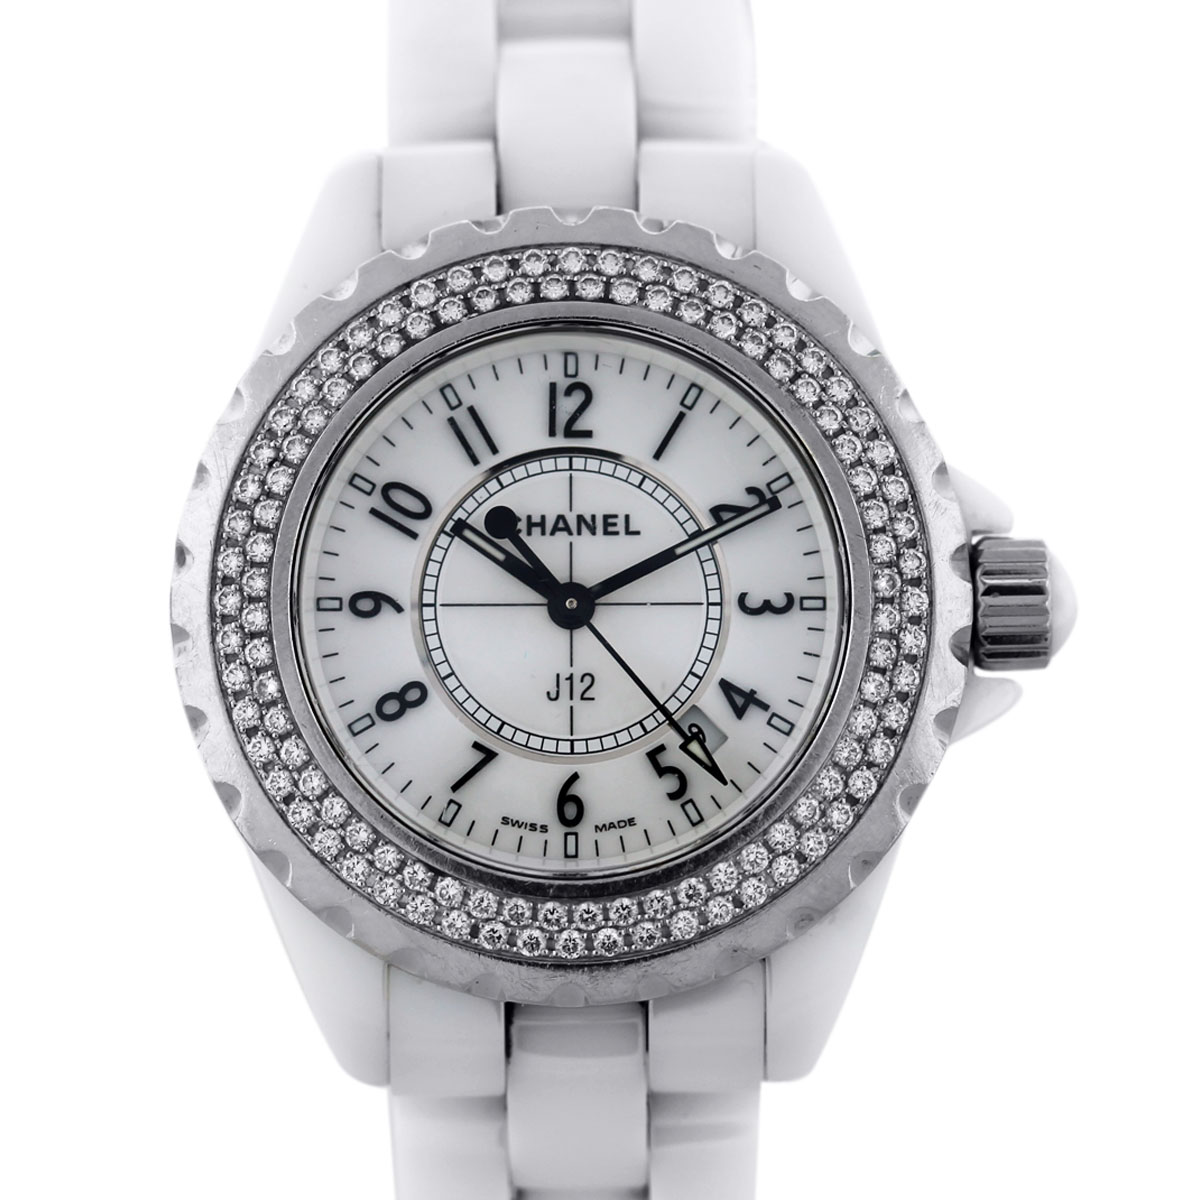 Chanel J12 White Ceramic 33 mm Diamond Watch-Boca Raton 6eb5588b919e